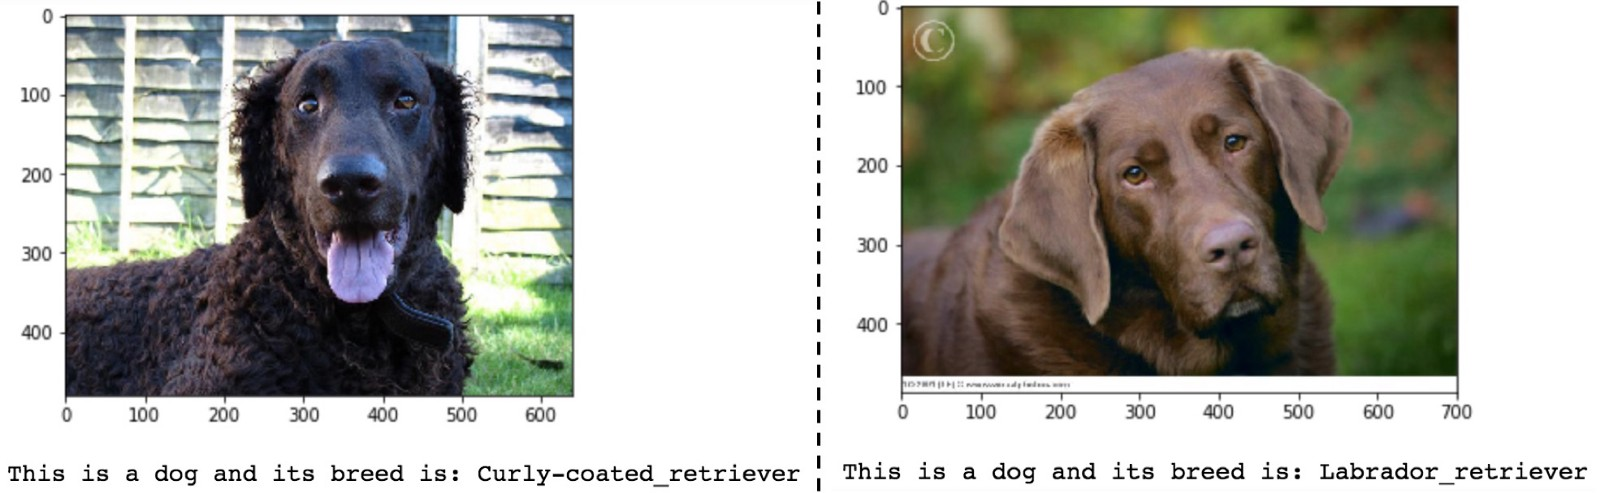 Build Your First Deep Learning Classifier using TensorFlow: Dog Breed Example